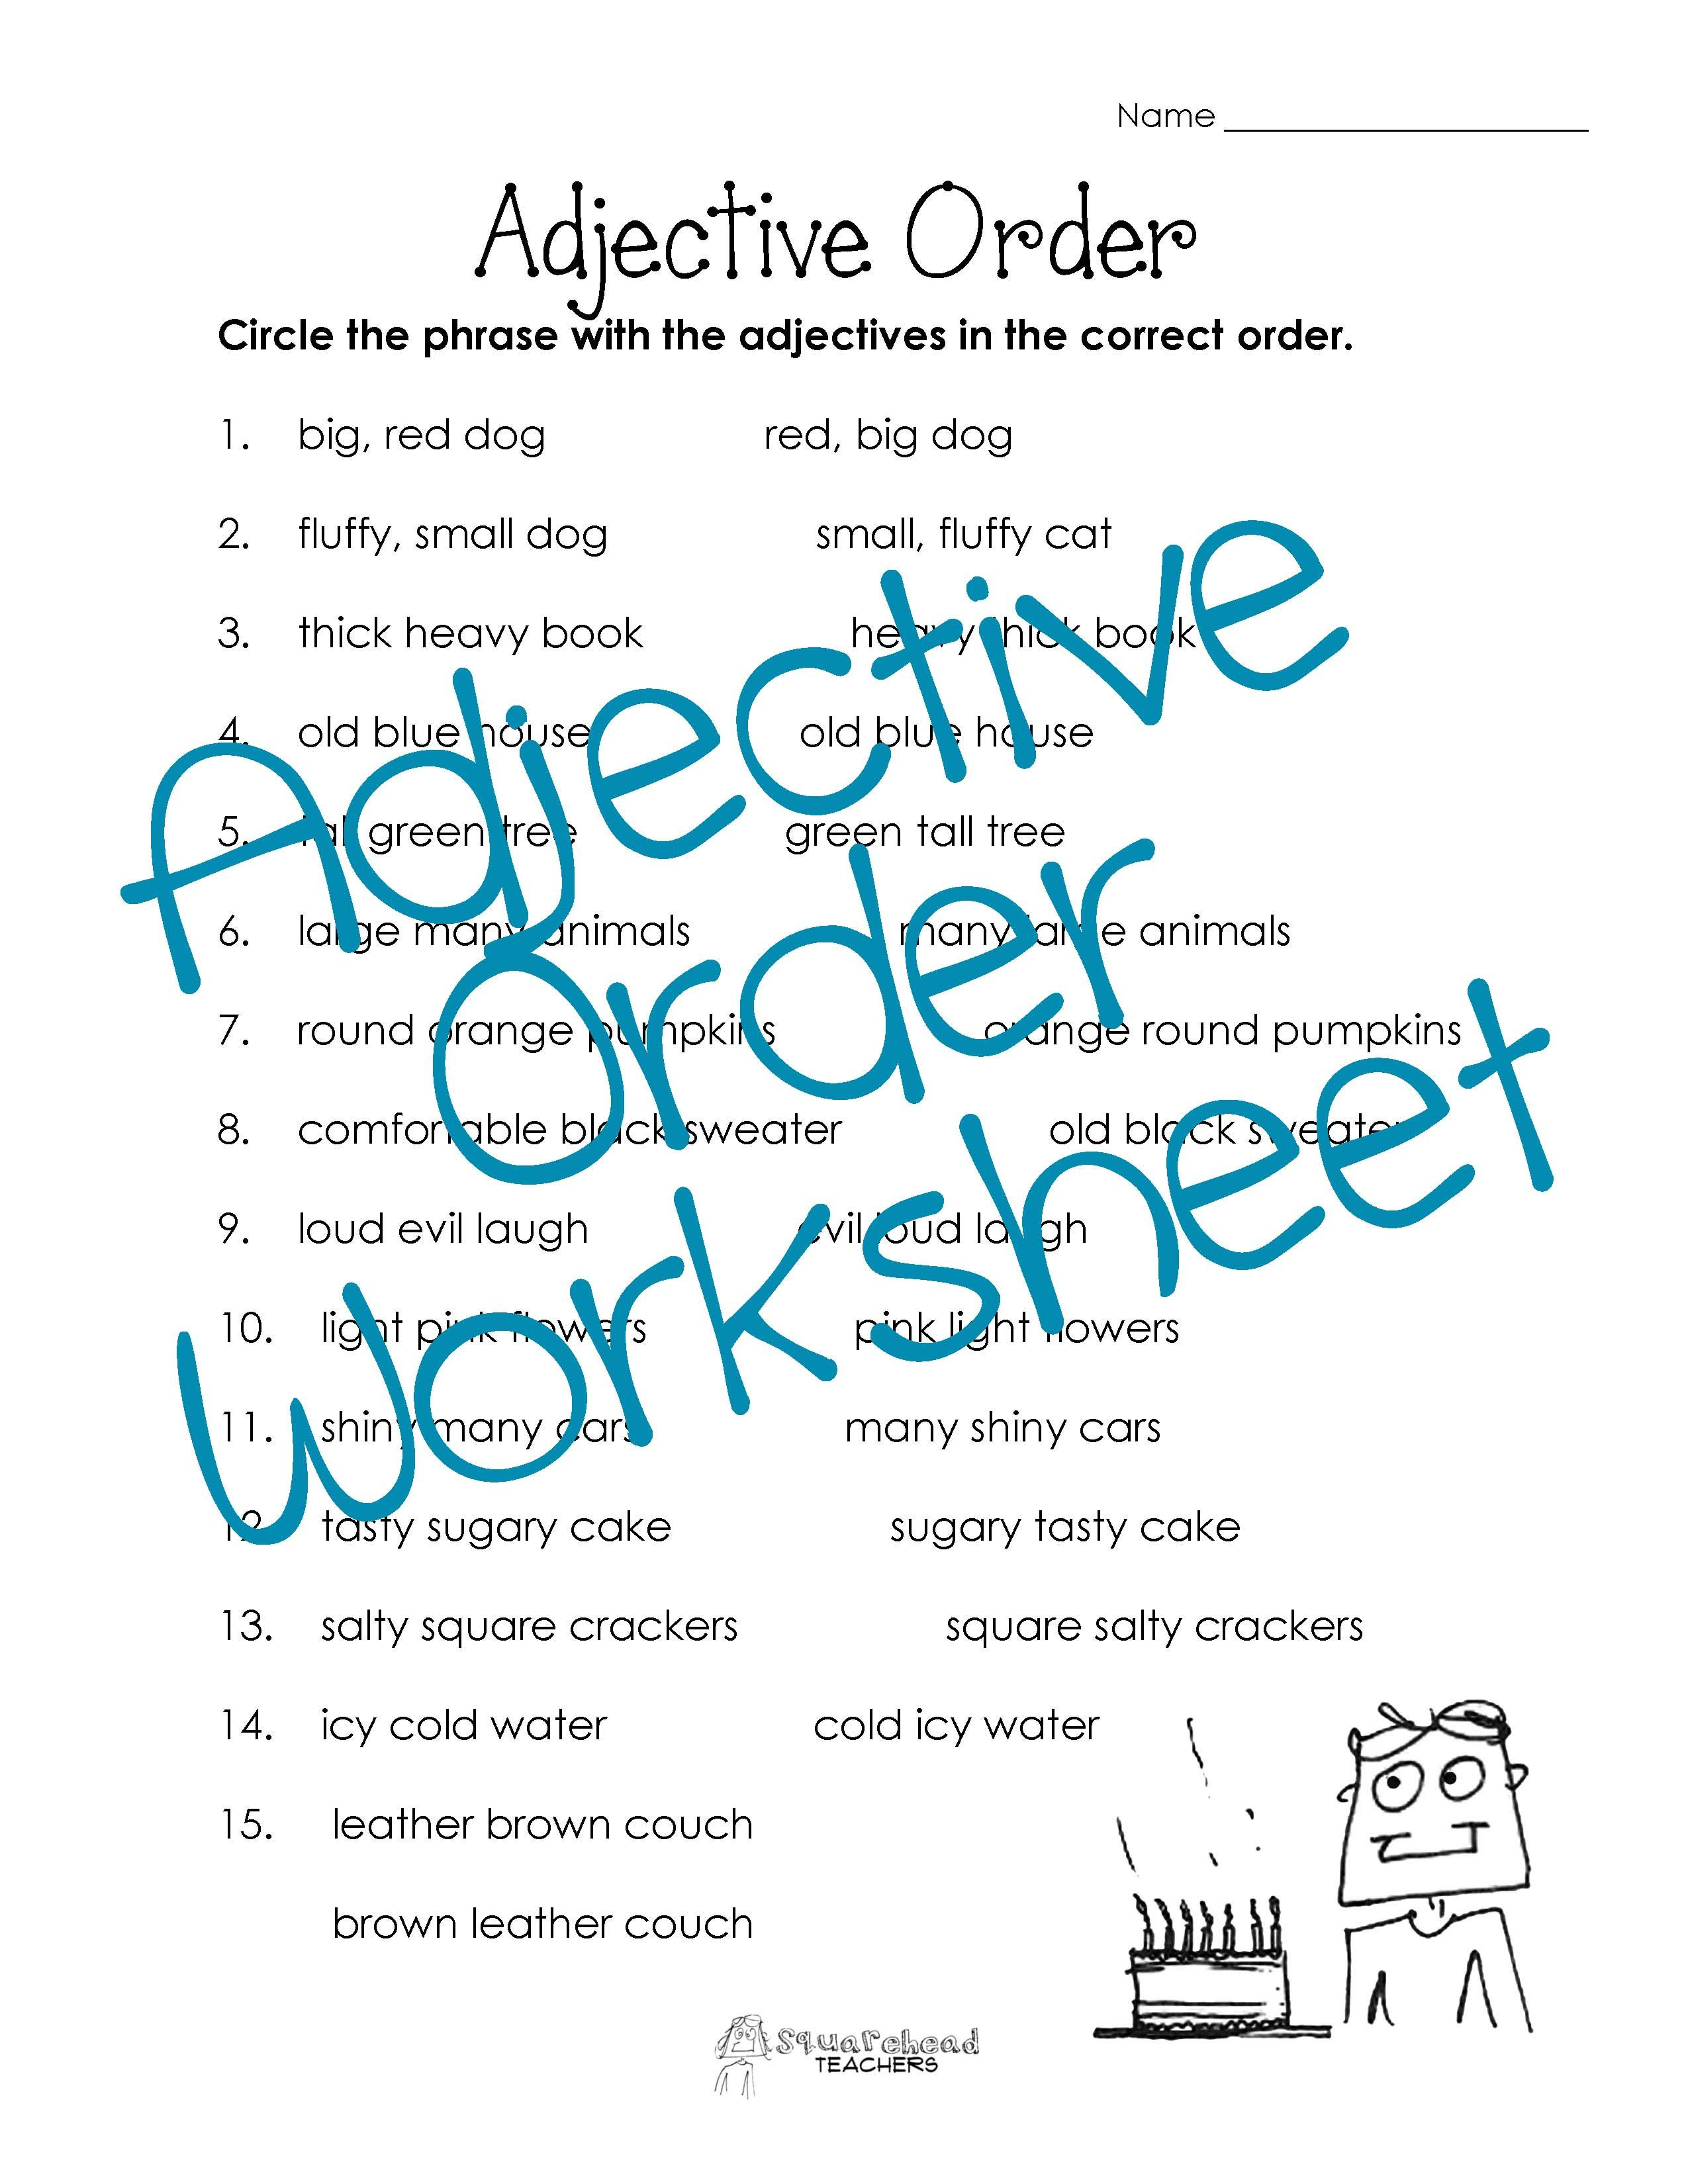 worksheet Ordering Paragraphs Worksheet one of the standards in common core is to order adjectives within sentences according to